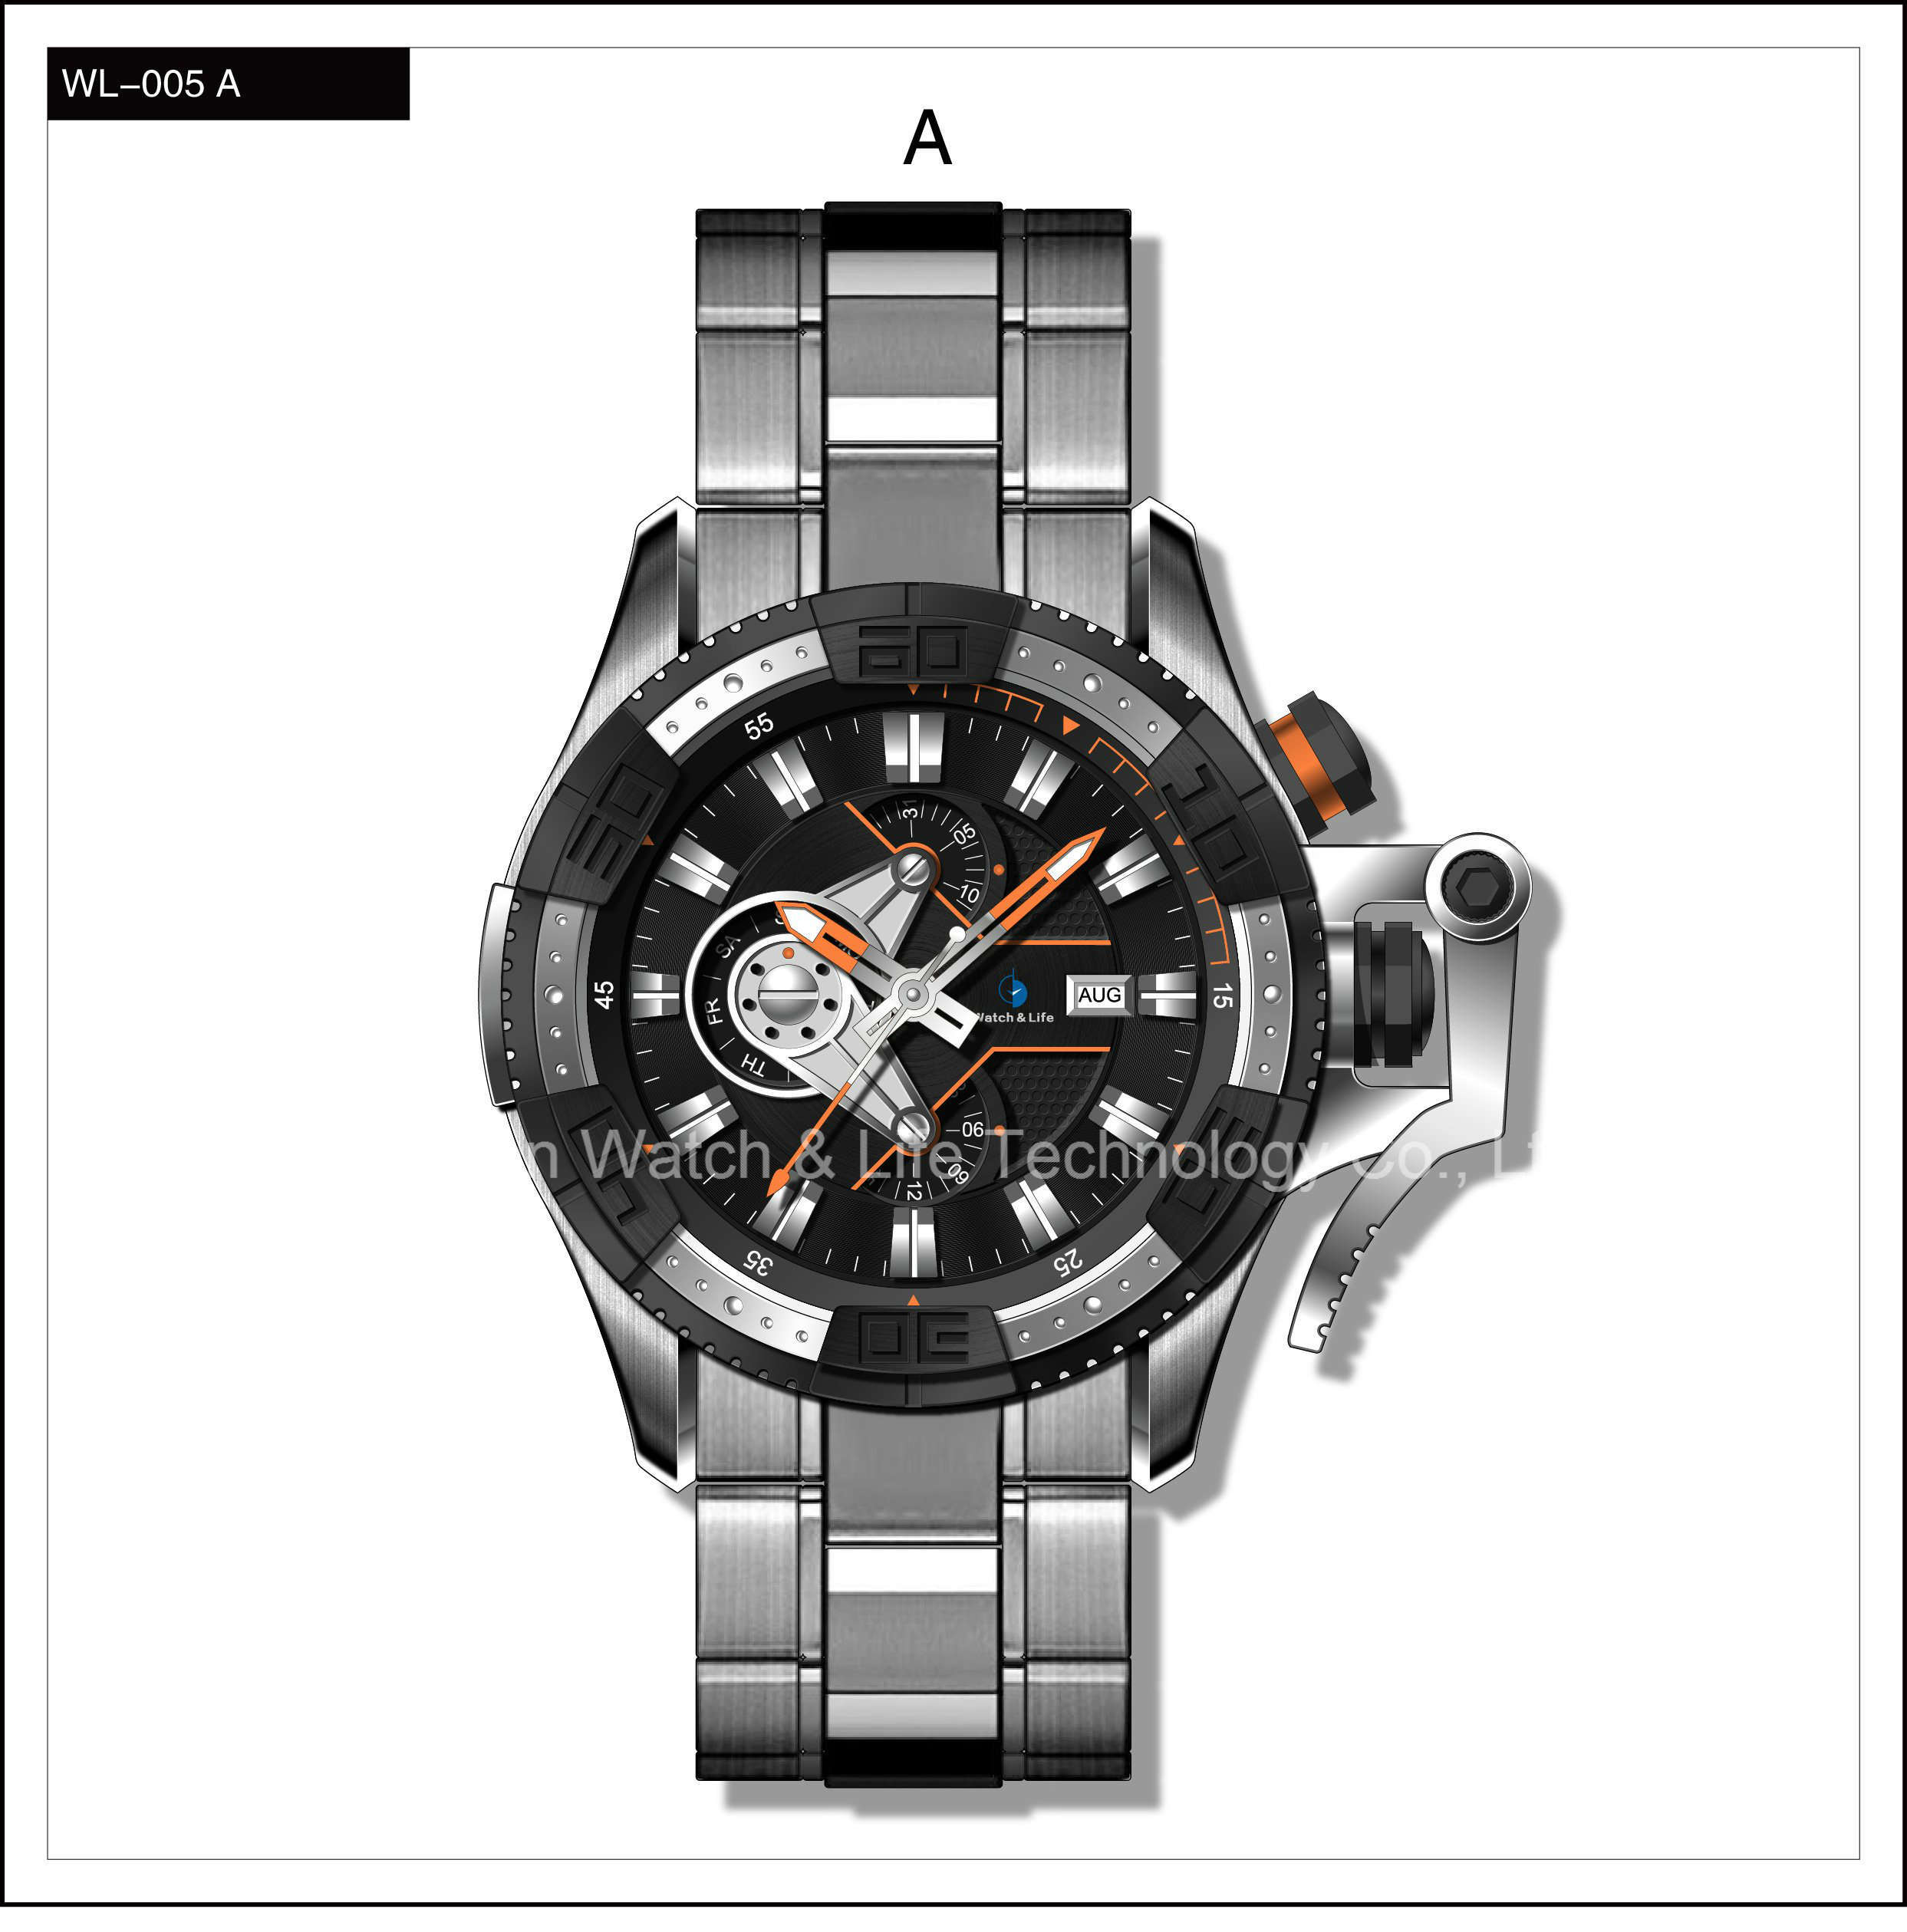 Mechanical Speical Fashion Sport Swiss Watch Stainless Steel Men′s Wrist Watch